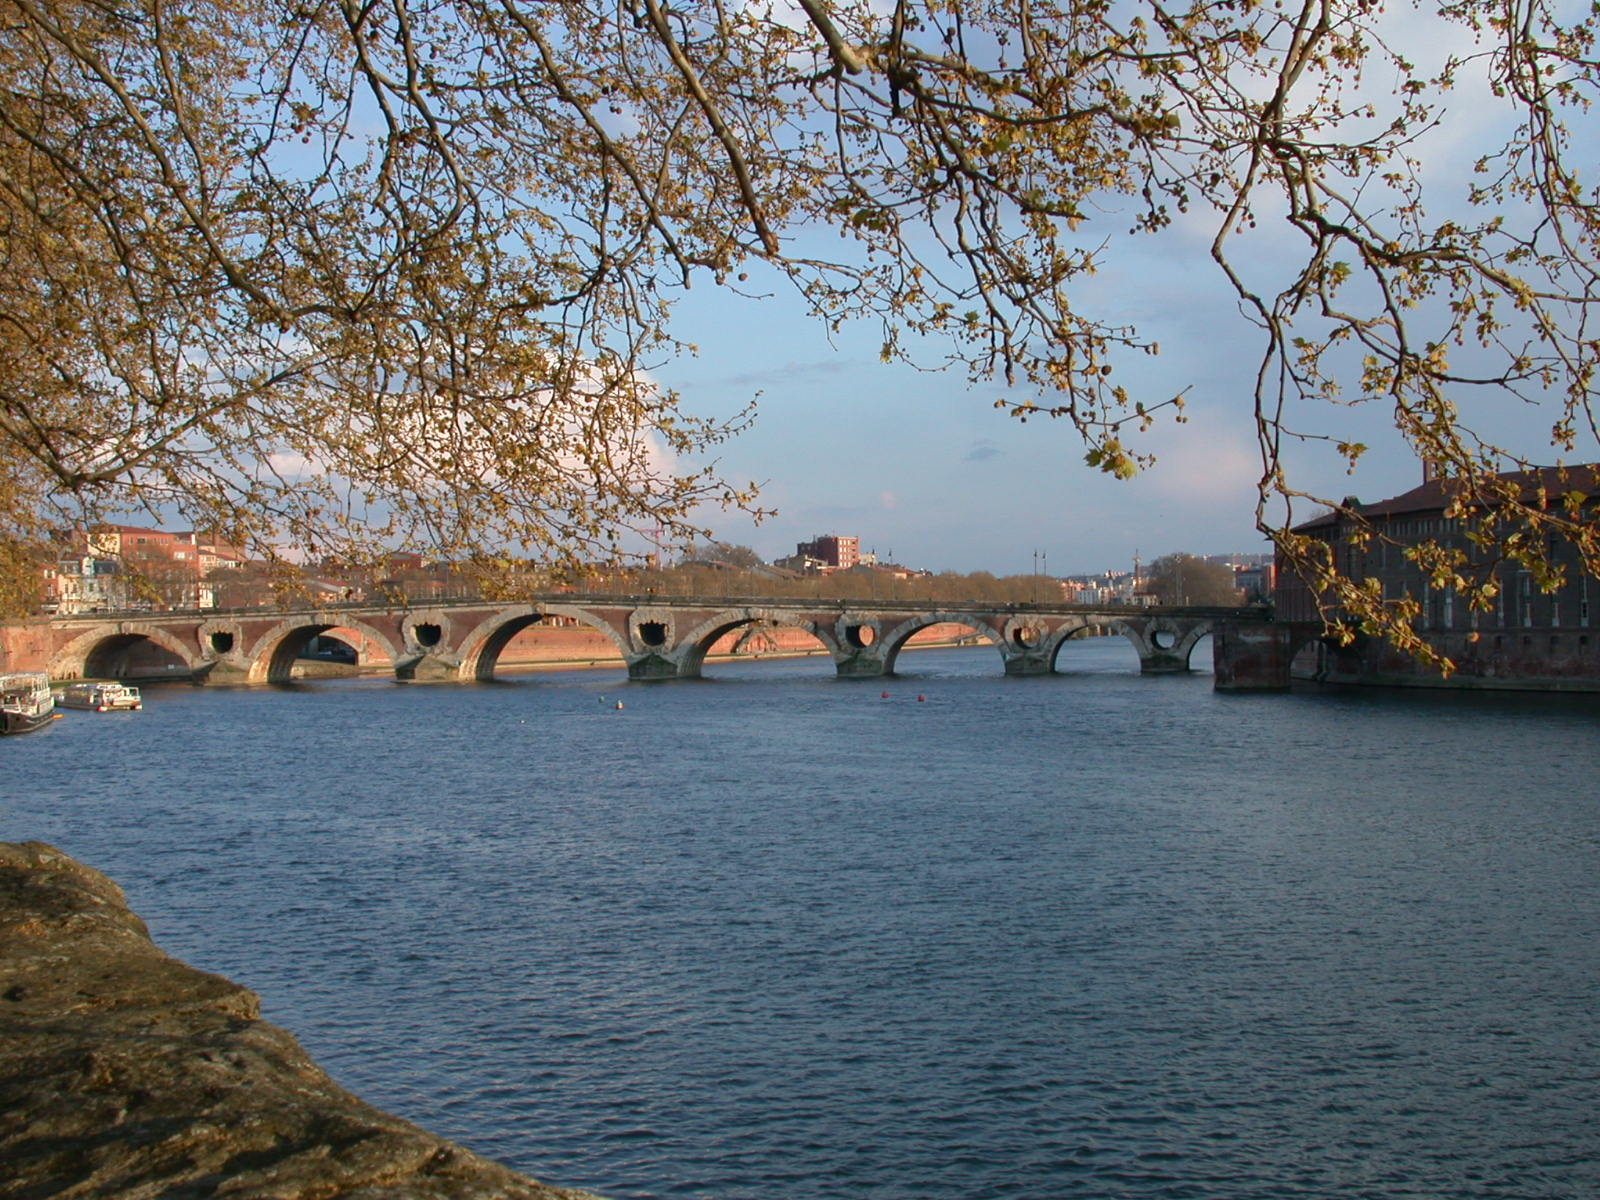 File:Garonne TOULOUSE.jpg - Wikimedia Commons